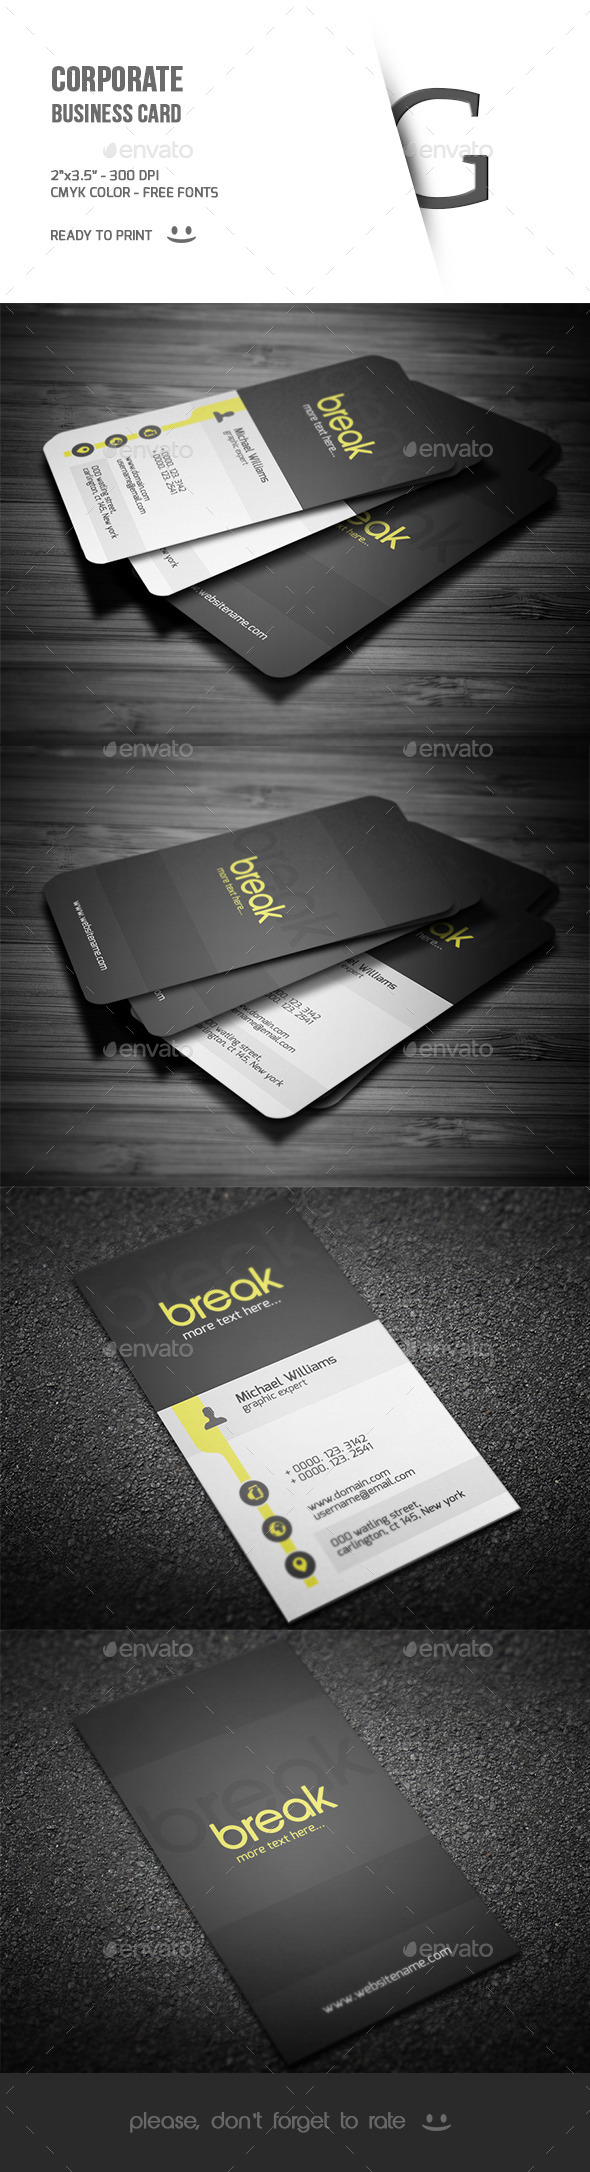 GraphicRiver Corporate Business Card 9593781